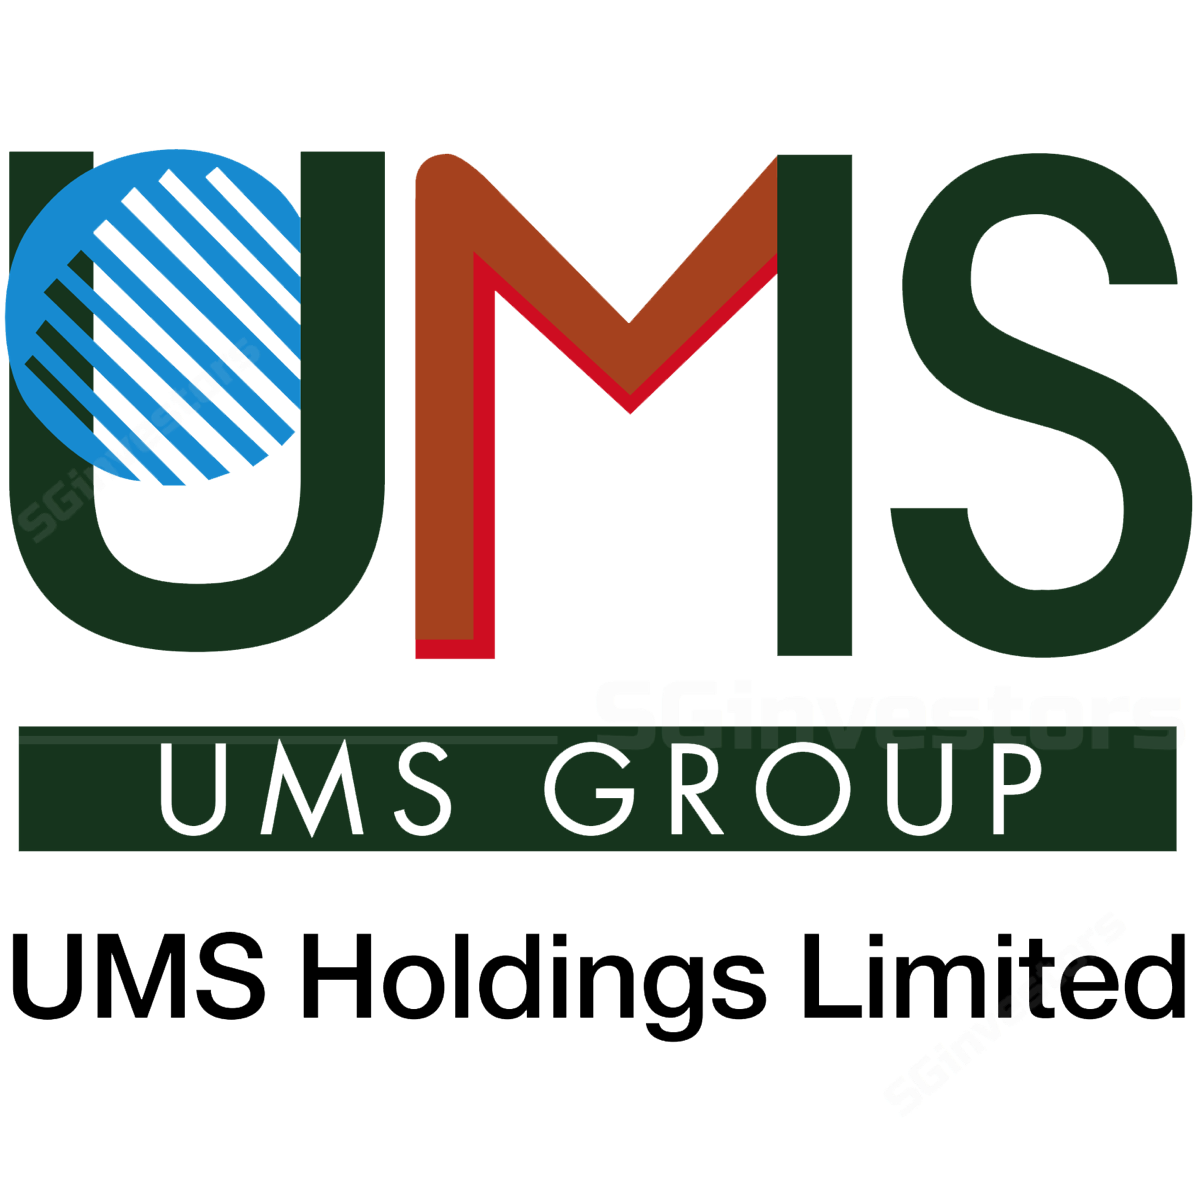 UMS Holdings Ltd - CIMB Research 2017-08-11: Demand To Moderate In 2H